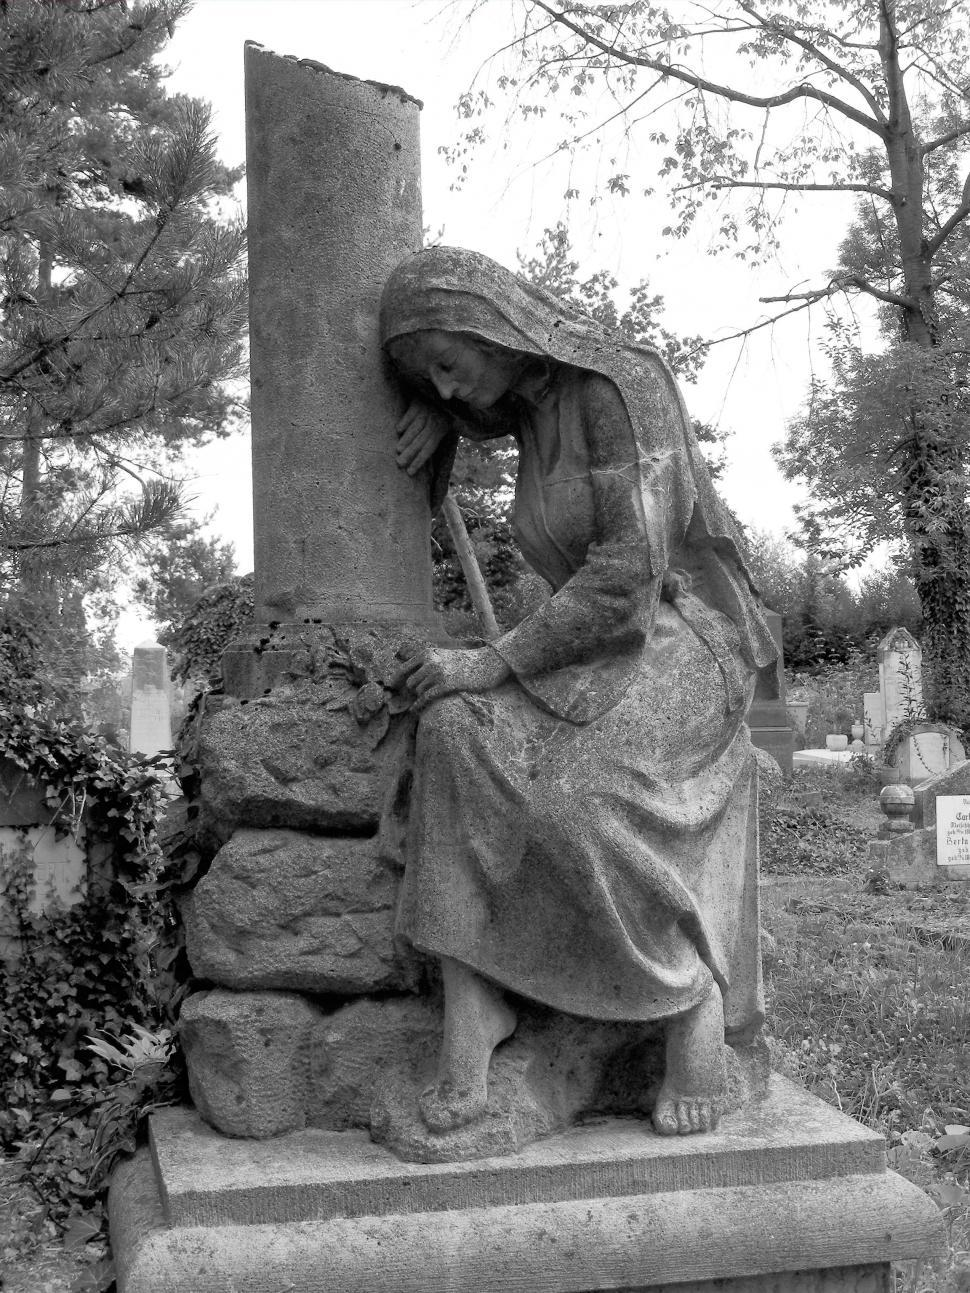 Download Free Stock Photo of Cemetery scene With grave stones black & white image